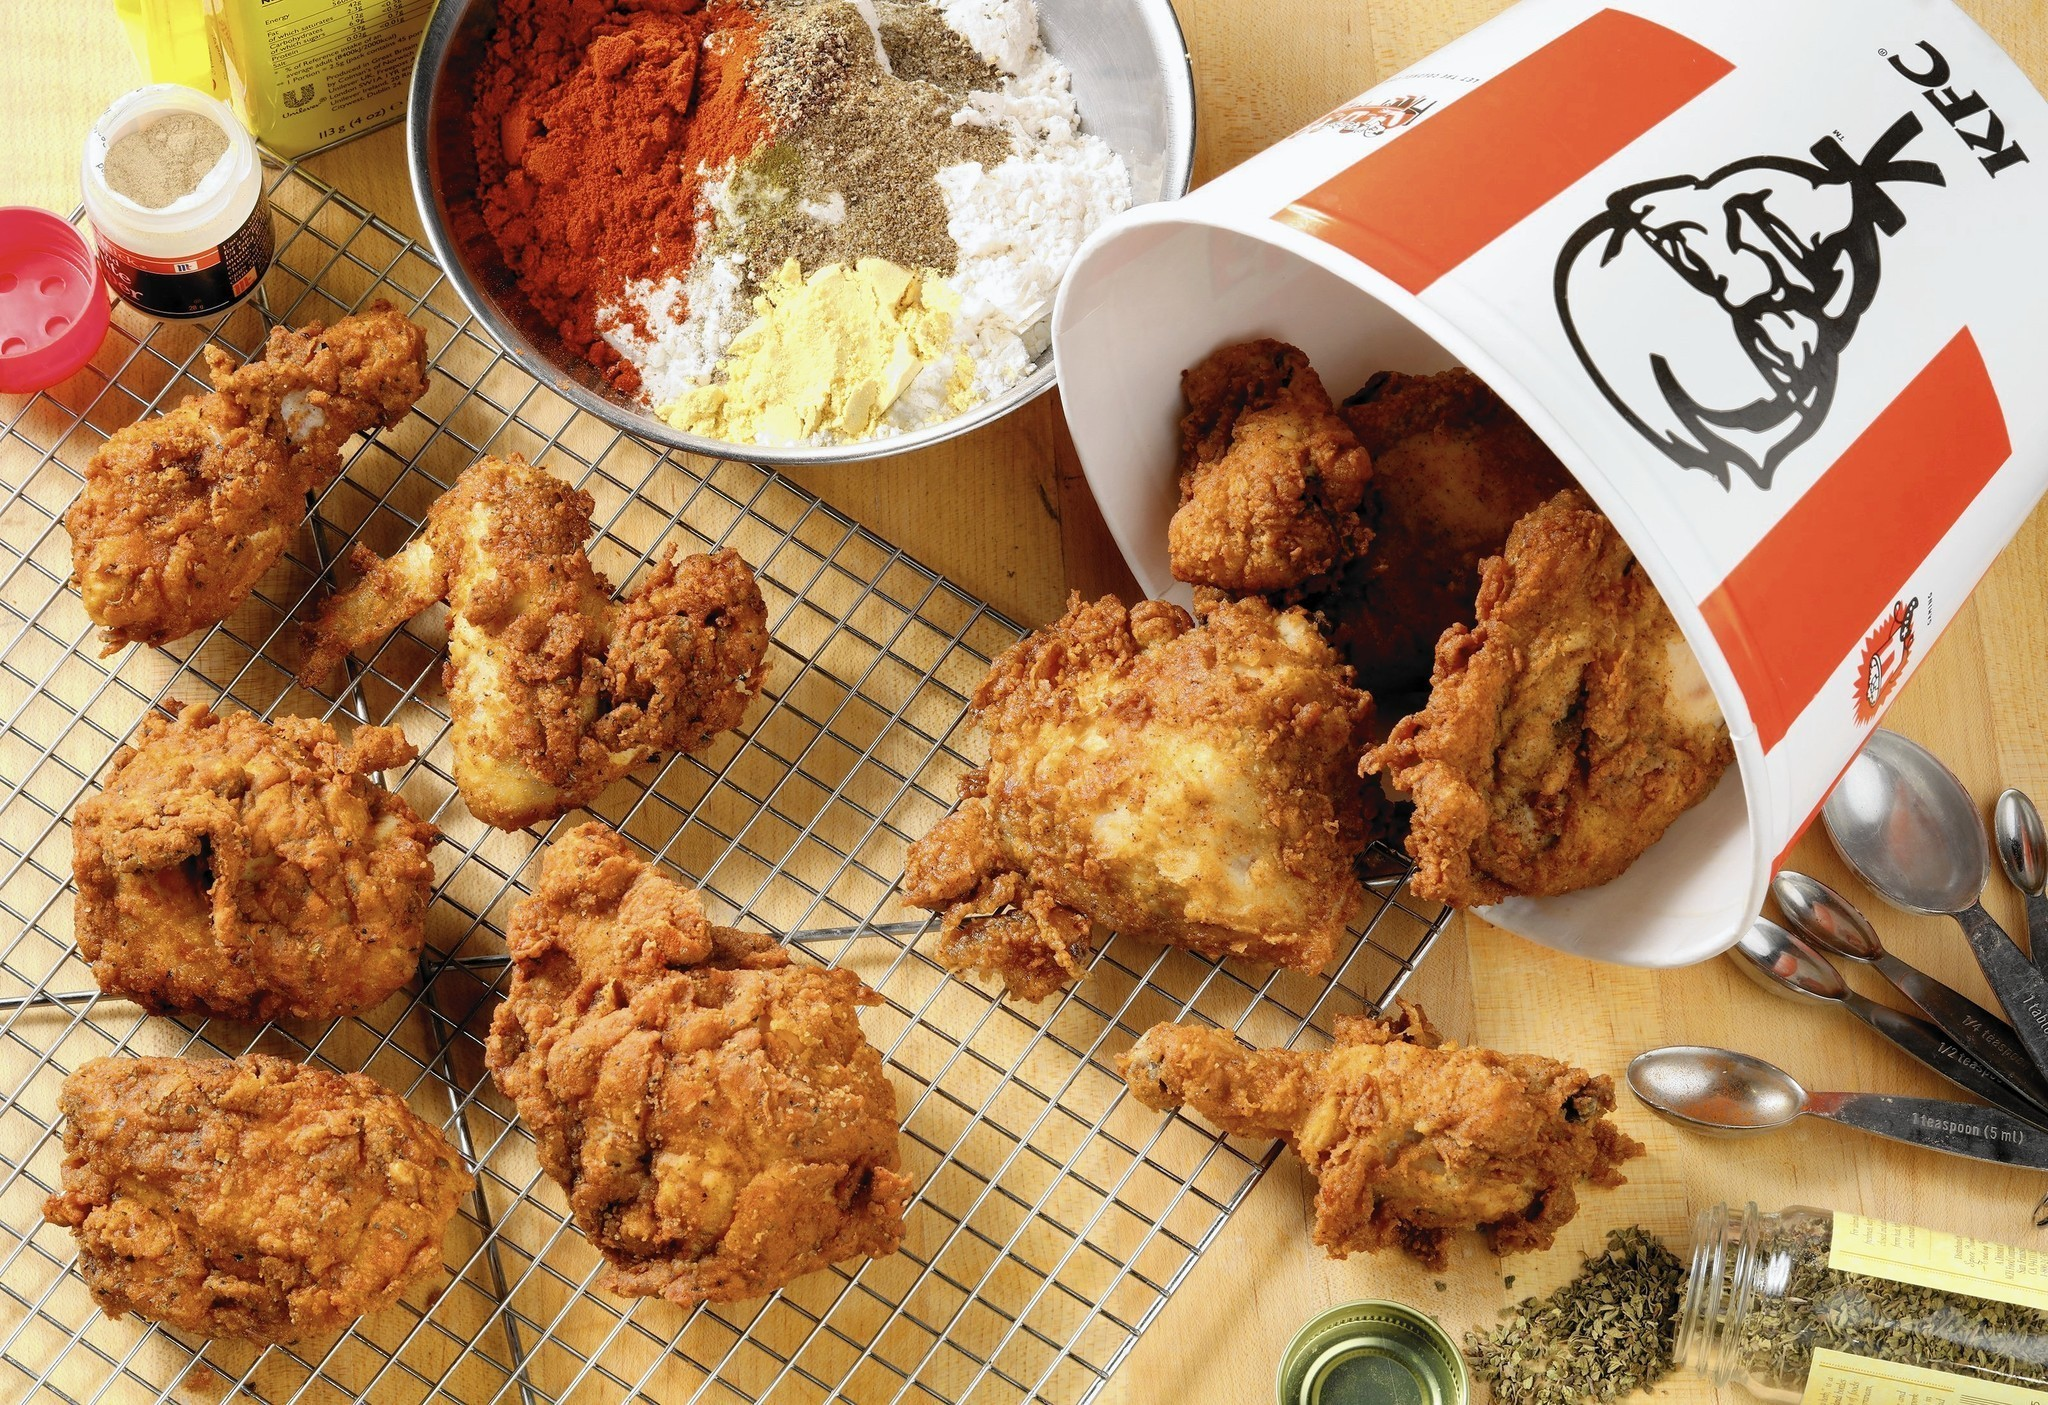 KFC recipe challenge: Tribune kitchen puts the 11 herbs ... - photo#5